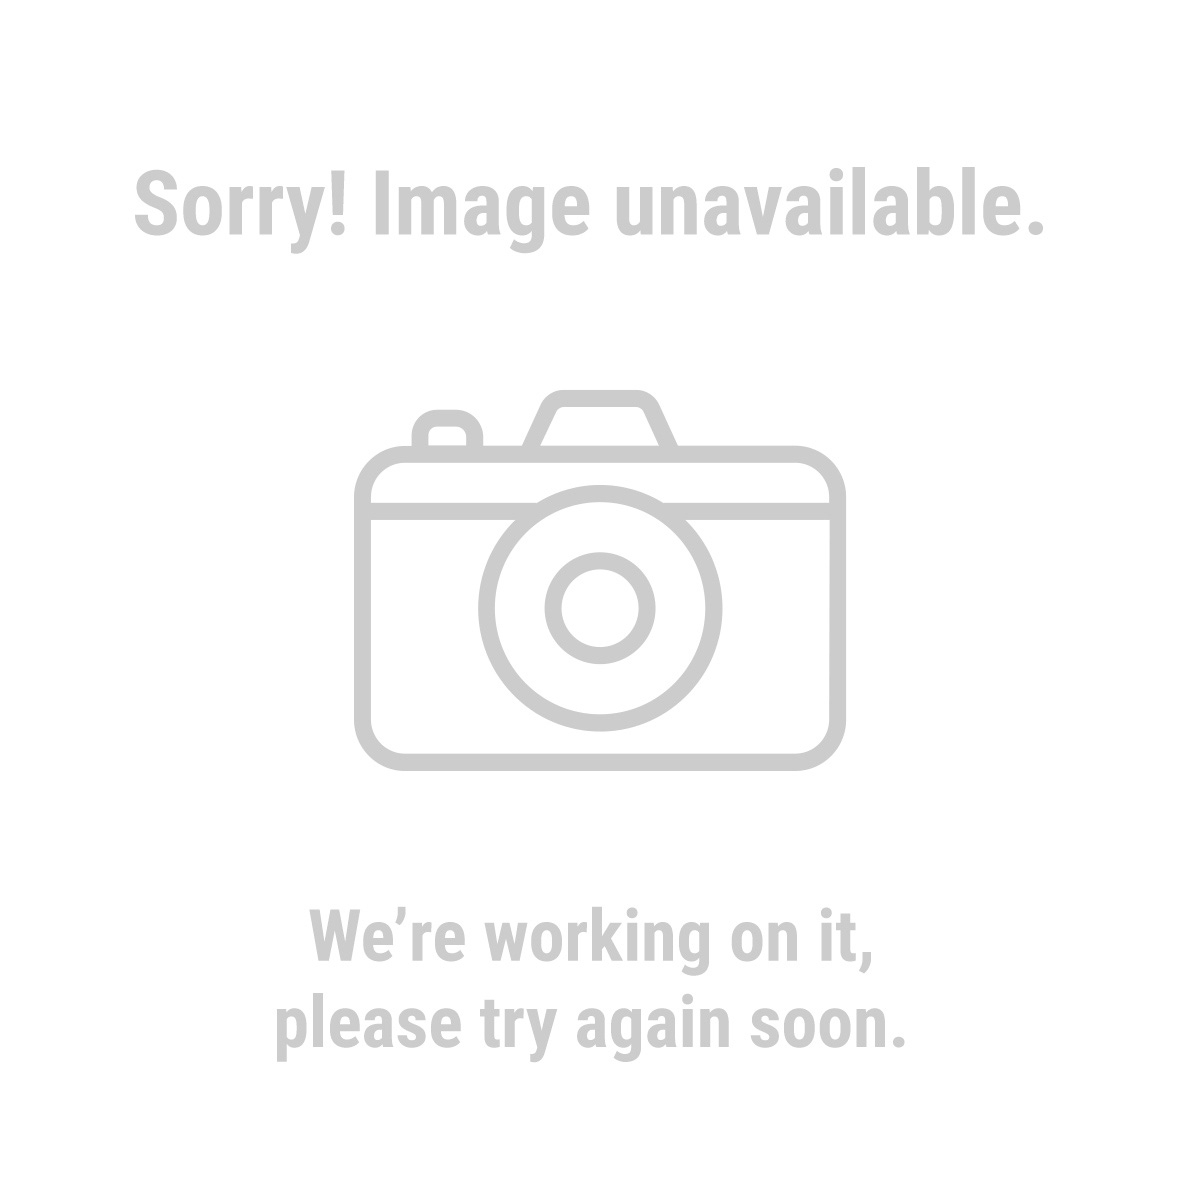 "Warrior 93893 10"", 40 Tooth Carbide Tipped Circular Saw Blade with Titanium Nitride Coating"